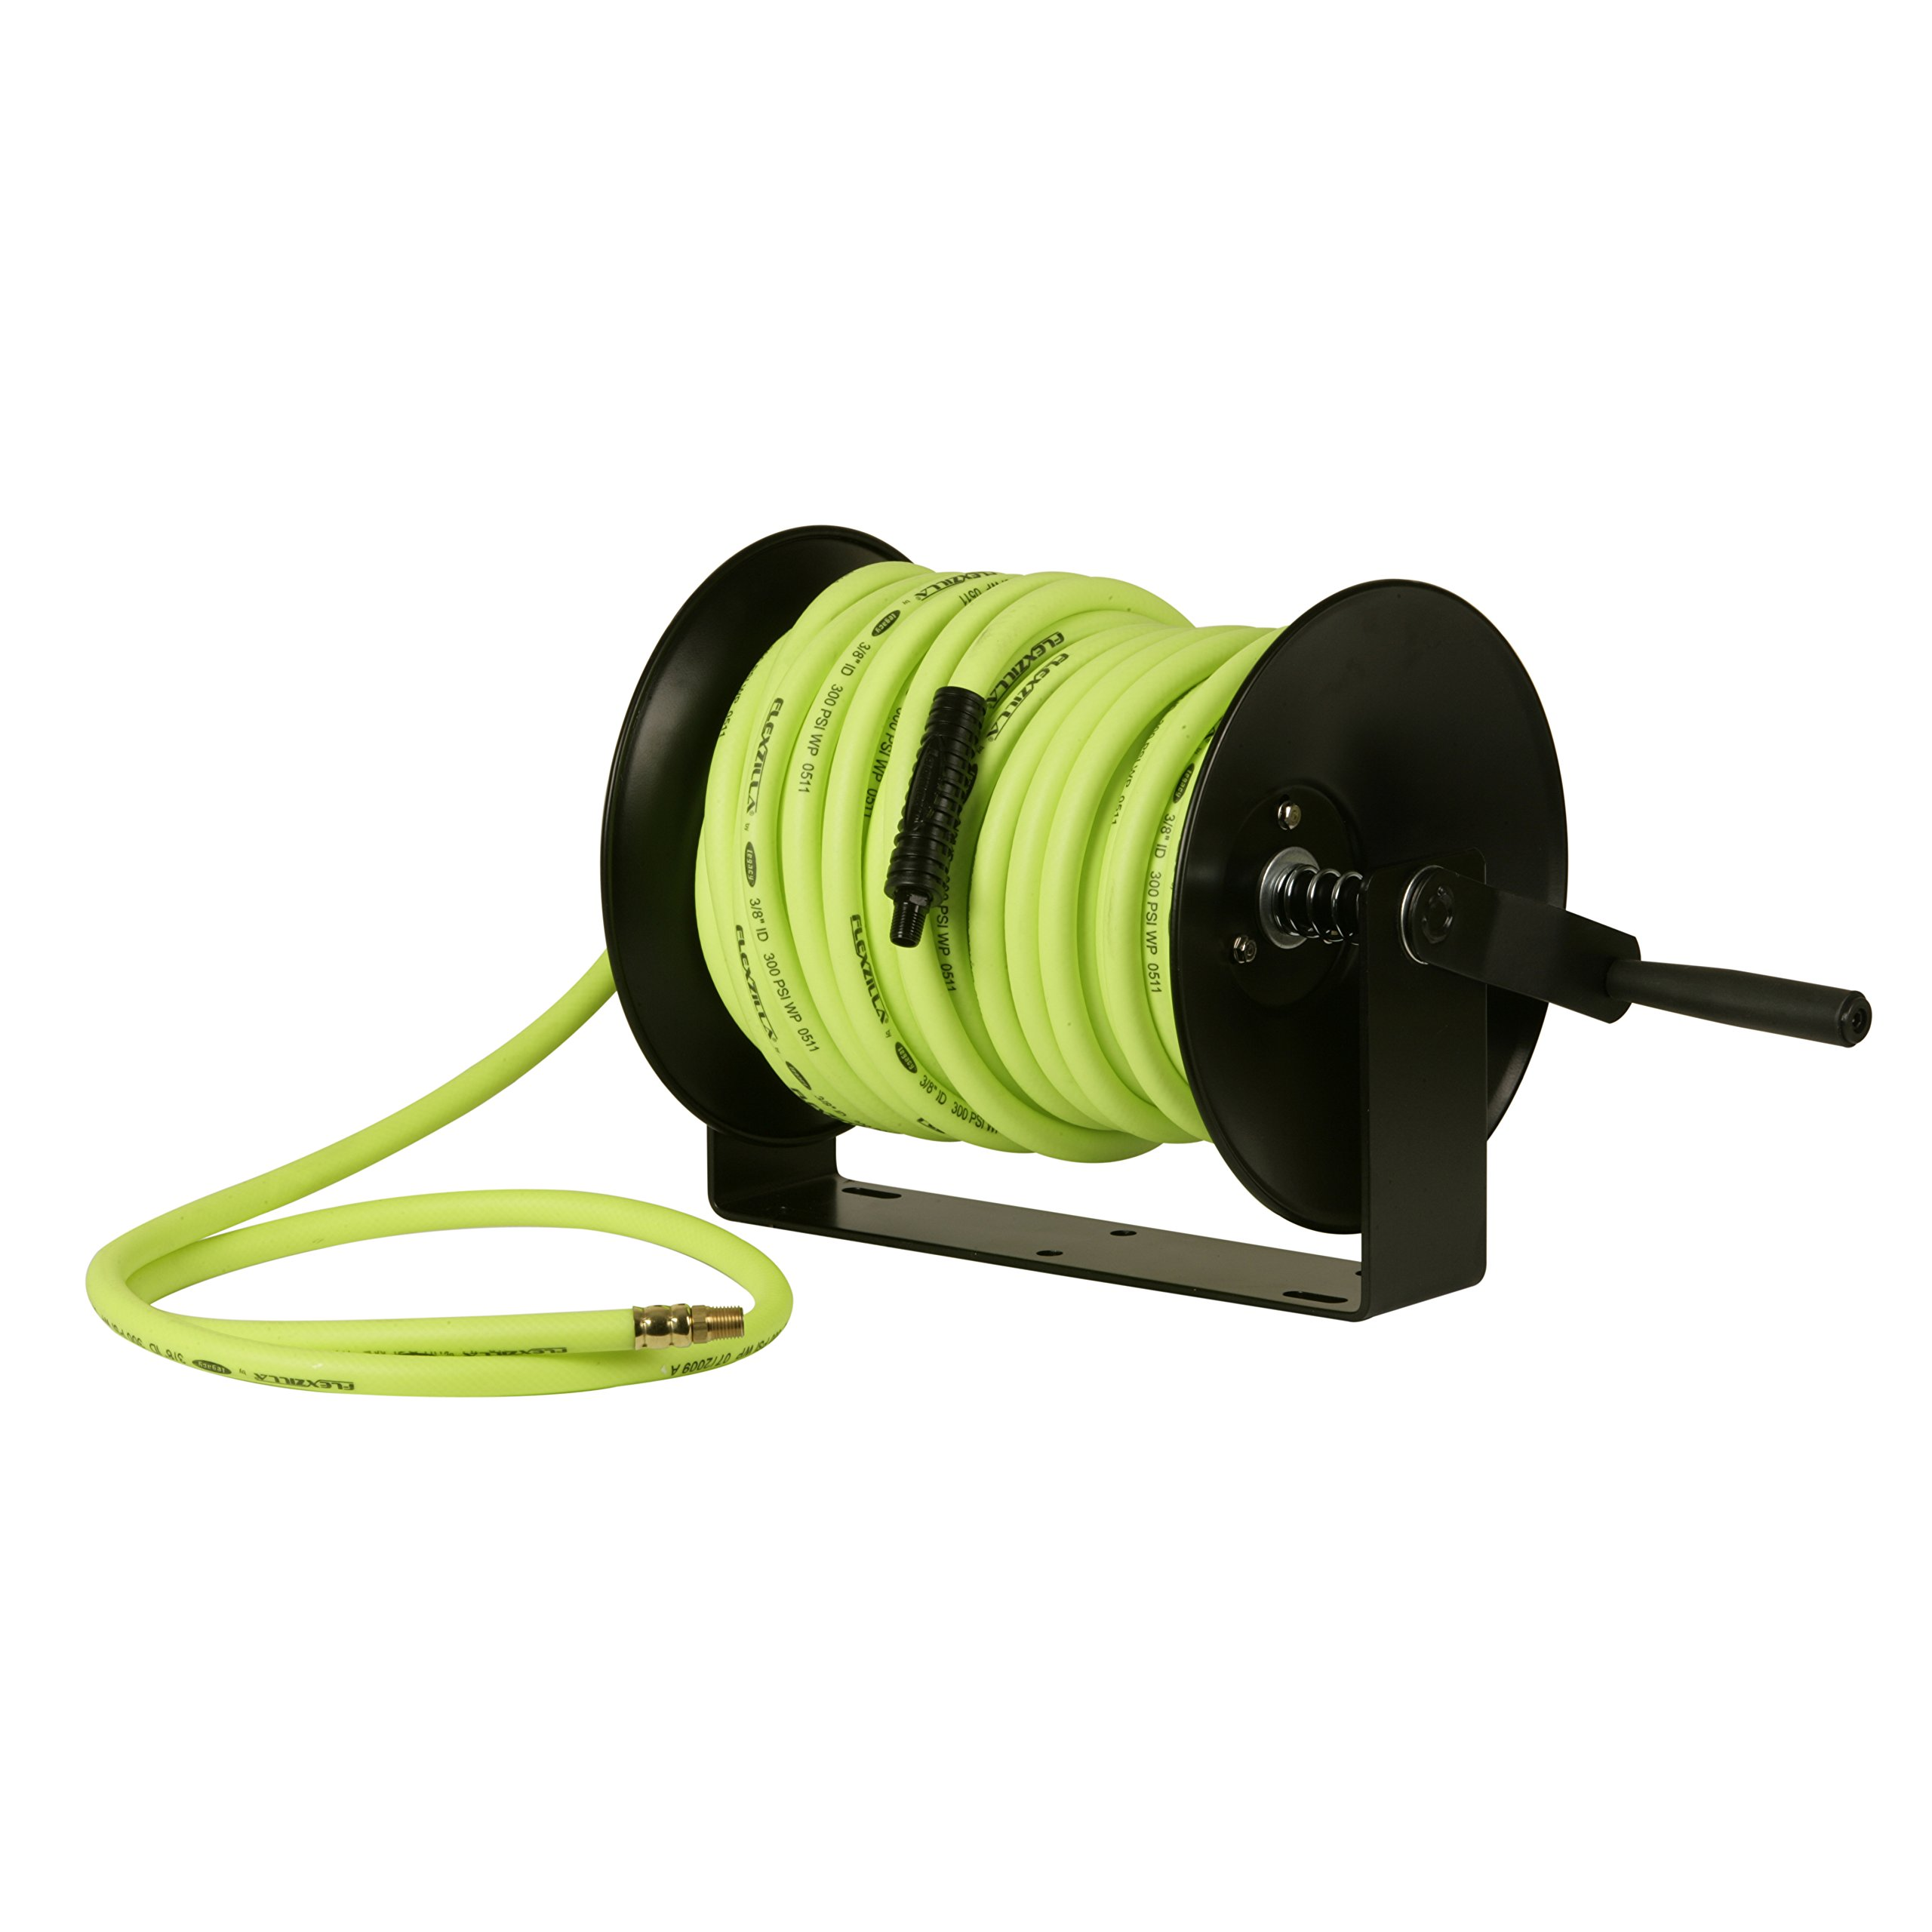 Flexzilla Manual Open Face Air Hose Reel, 3/8 in. x 50 ft, Heavy Duty, Lightweight, Hybrid, ZillaGreen - L8652FZ